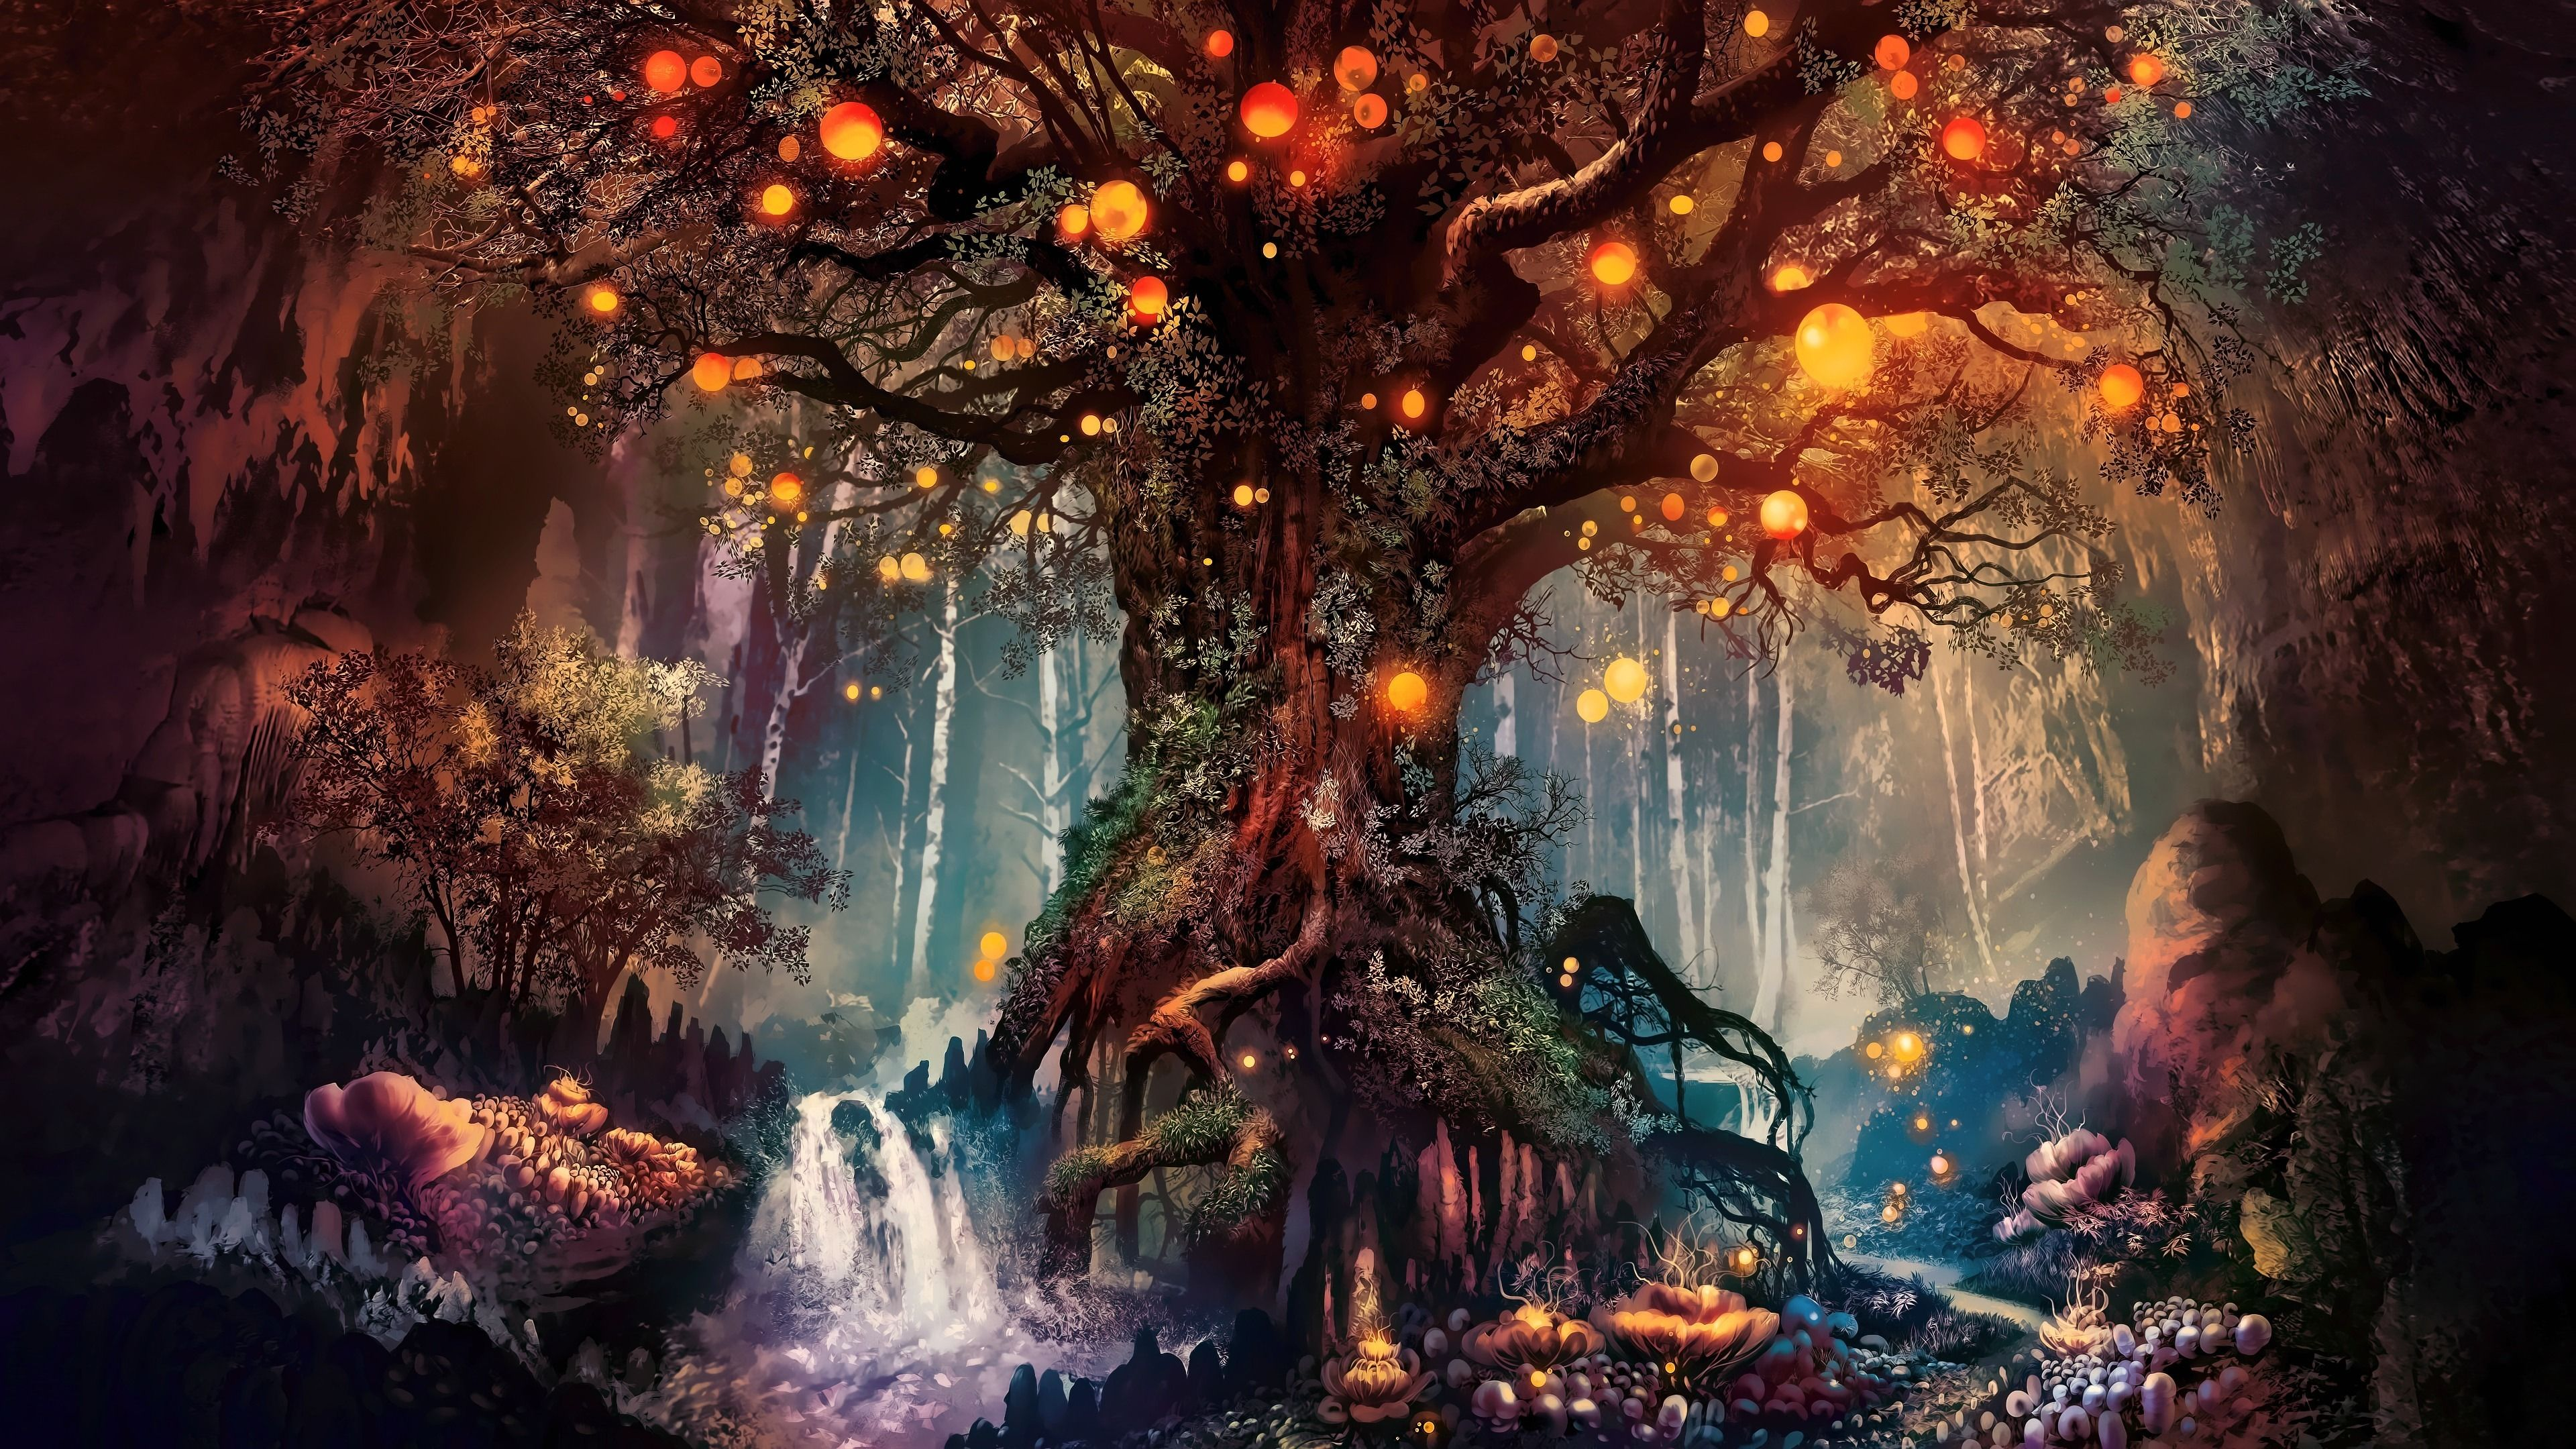 Download 3840x2160 Wallpaper Old Tree Fantasy Art 4k Uhd 16 9 Widescreen 3840x2160 Hd Image Background 1193 Art Wallpaper Fantasy Artwork Fantasy Tree